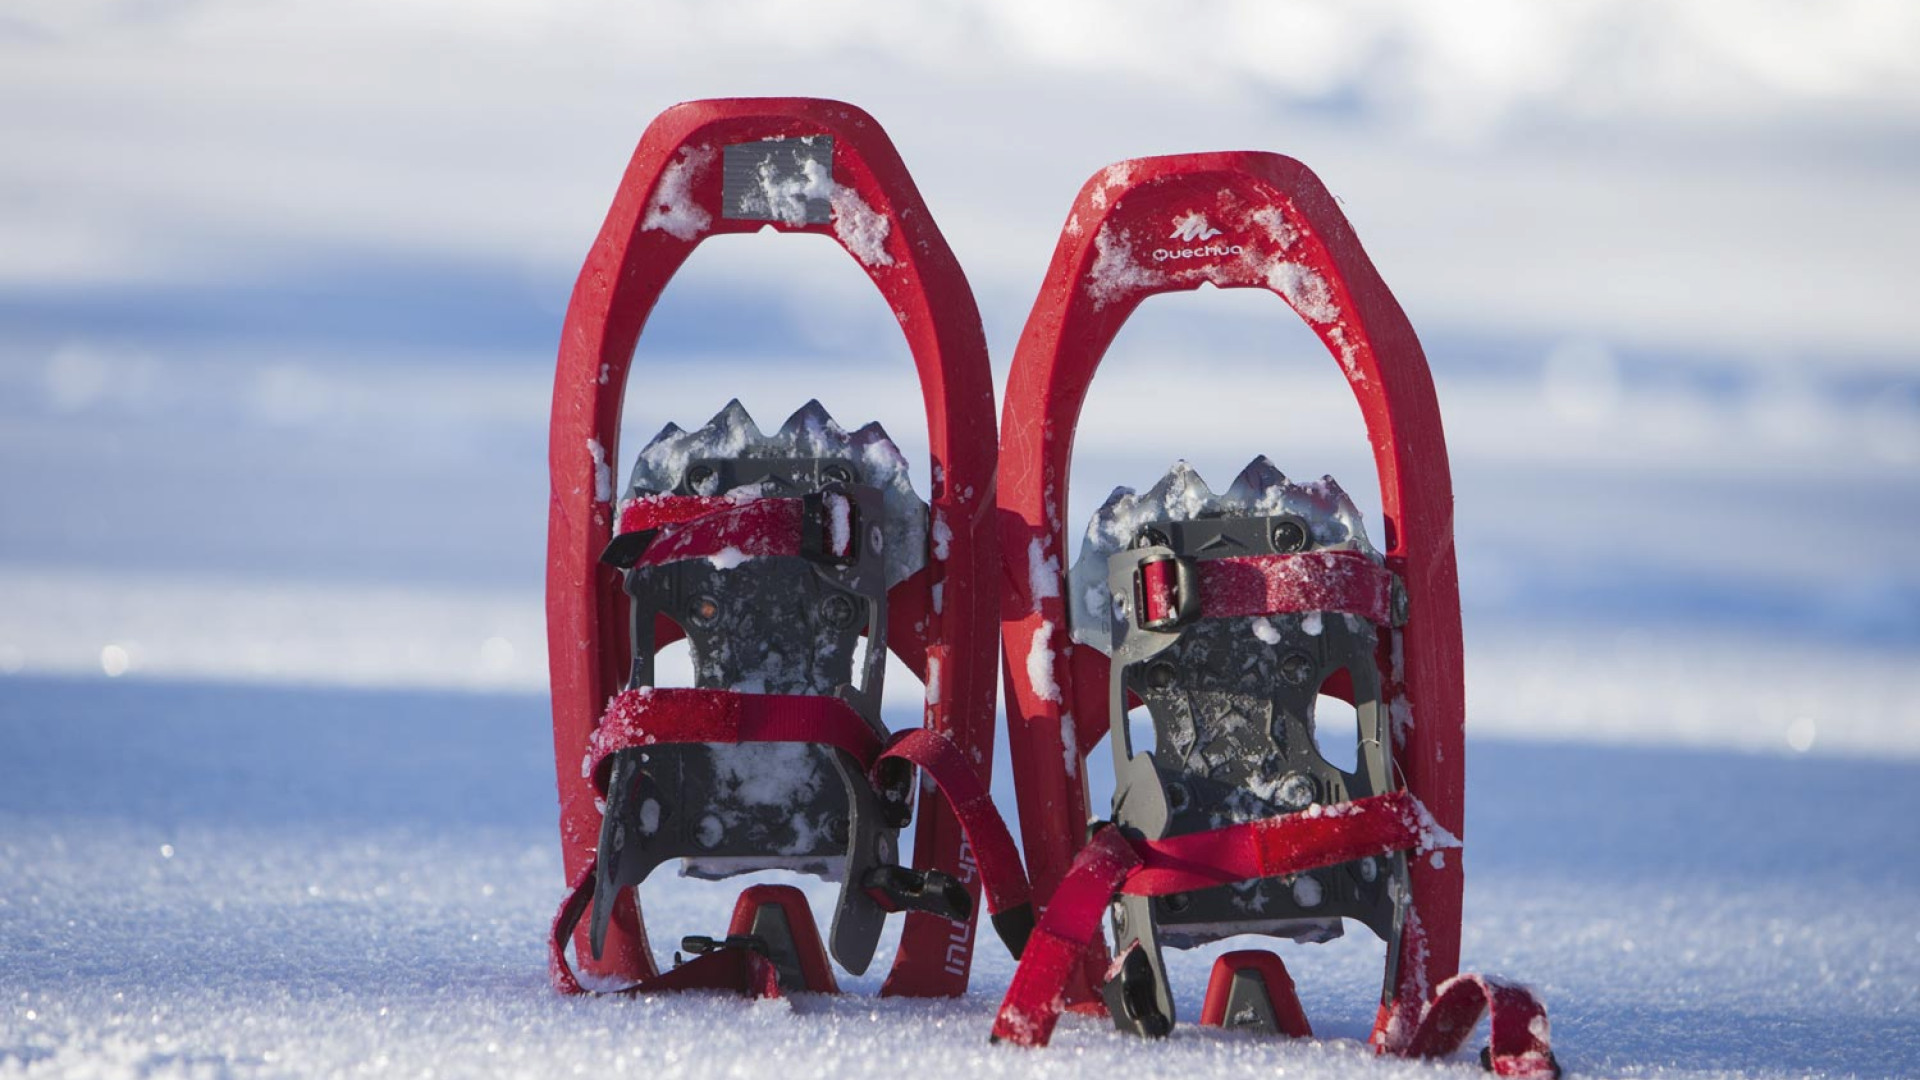 Snow shoes used in mountain survival masterclass